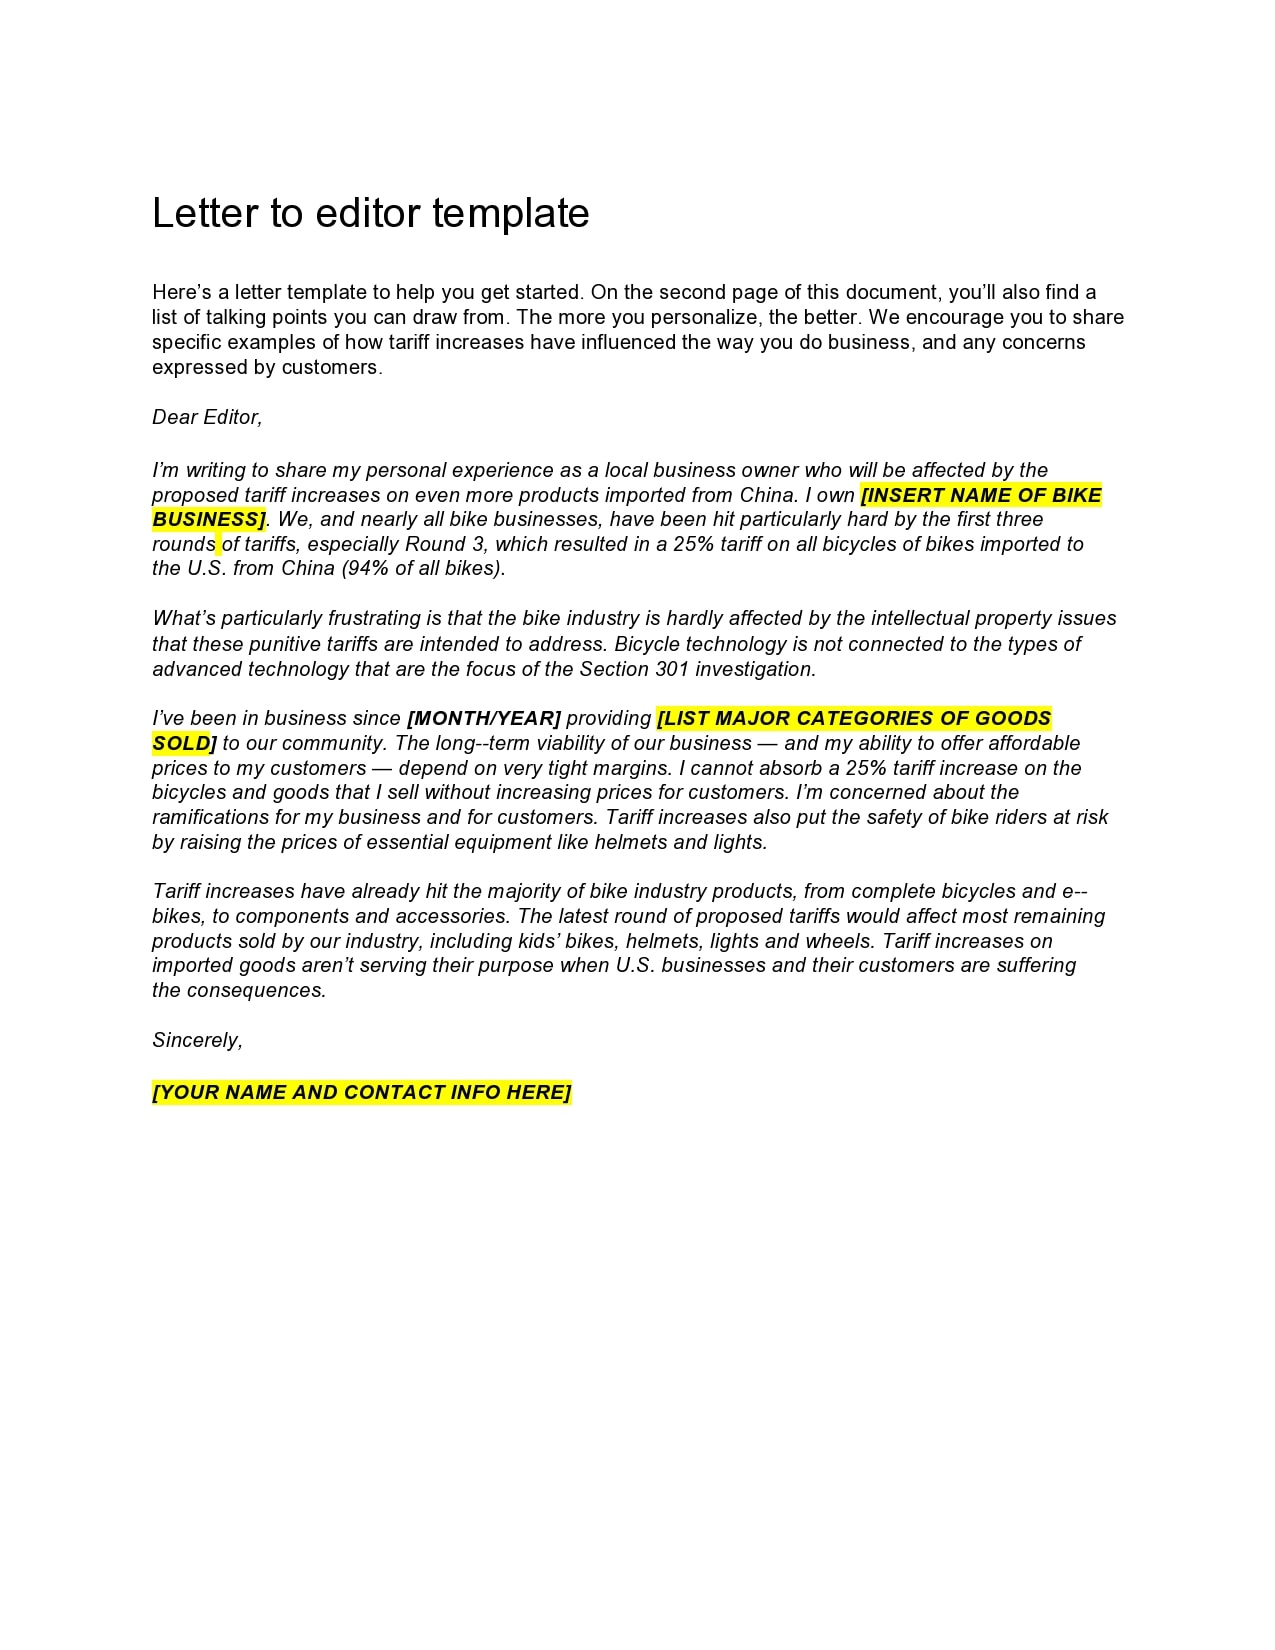 letter to the editor template 28